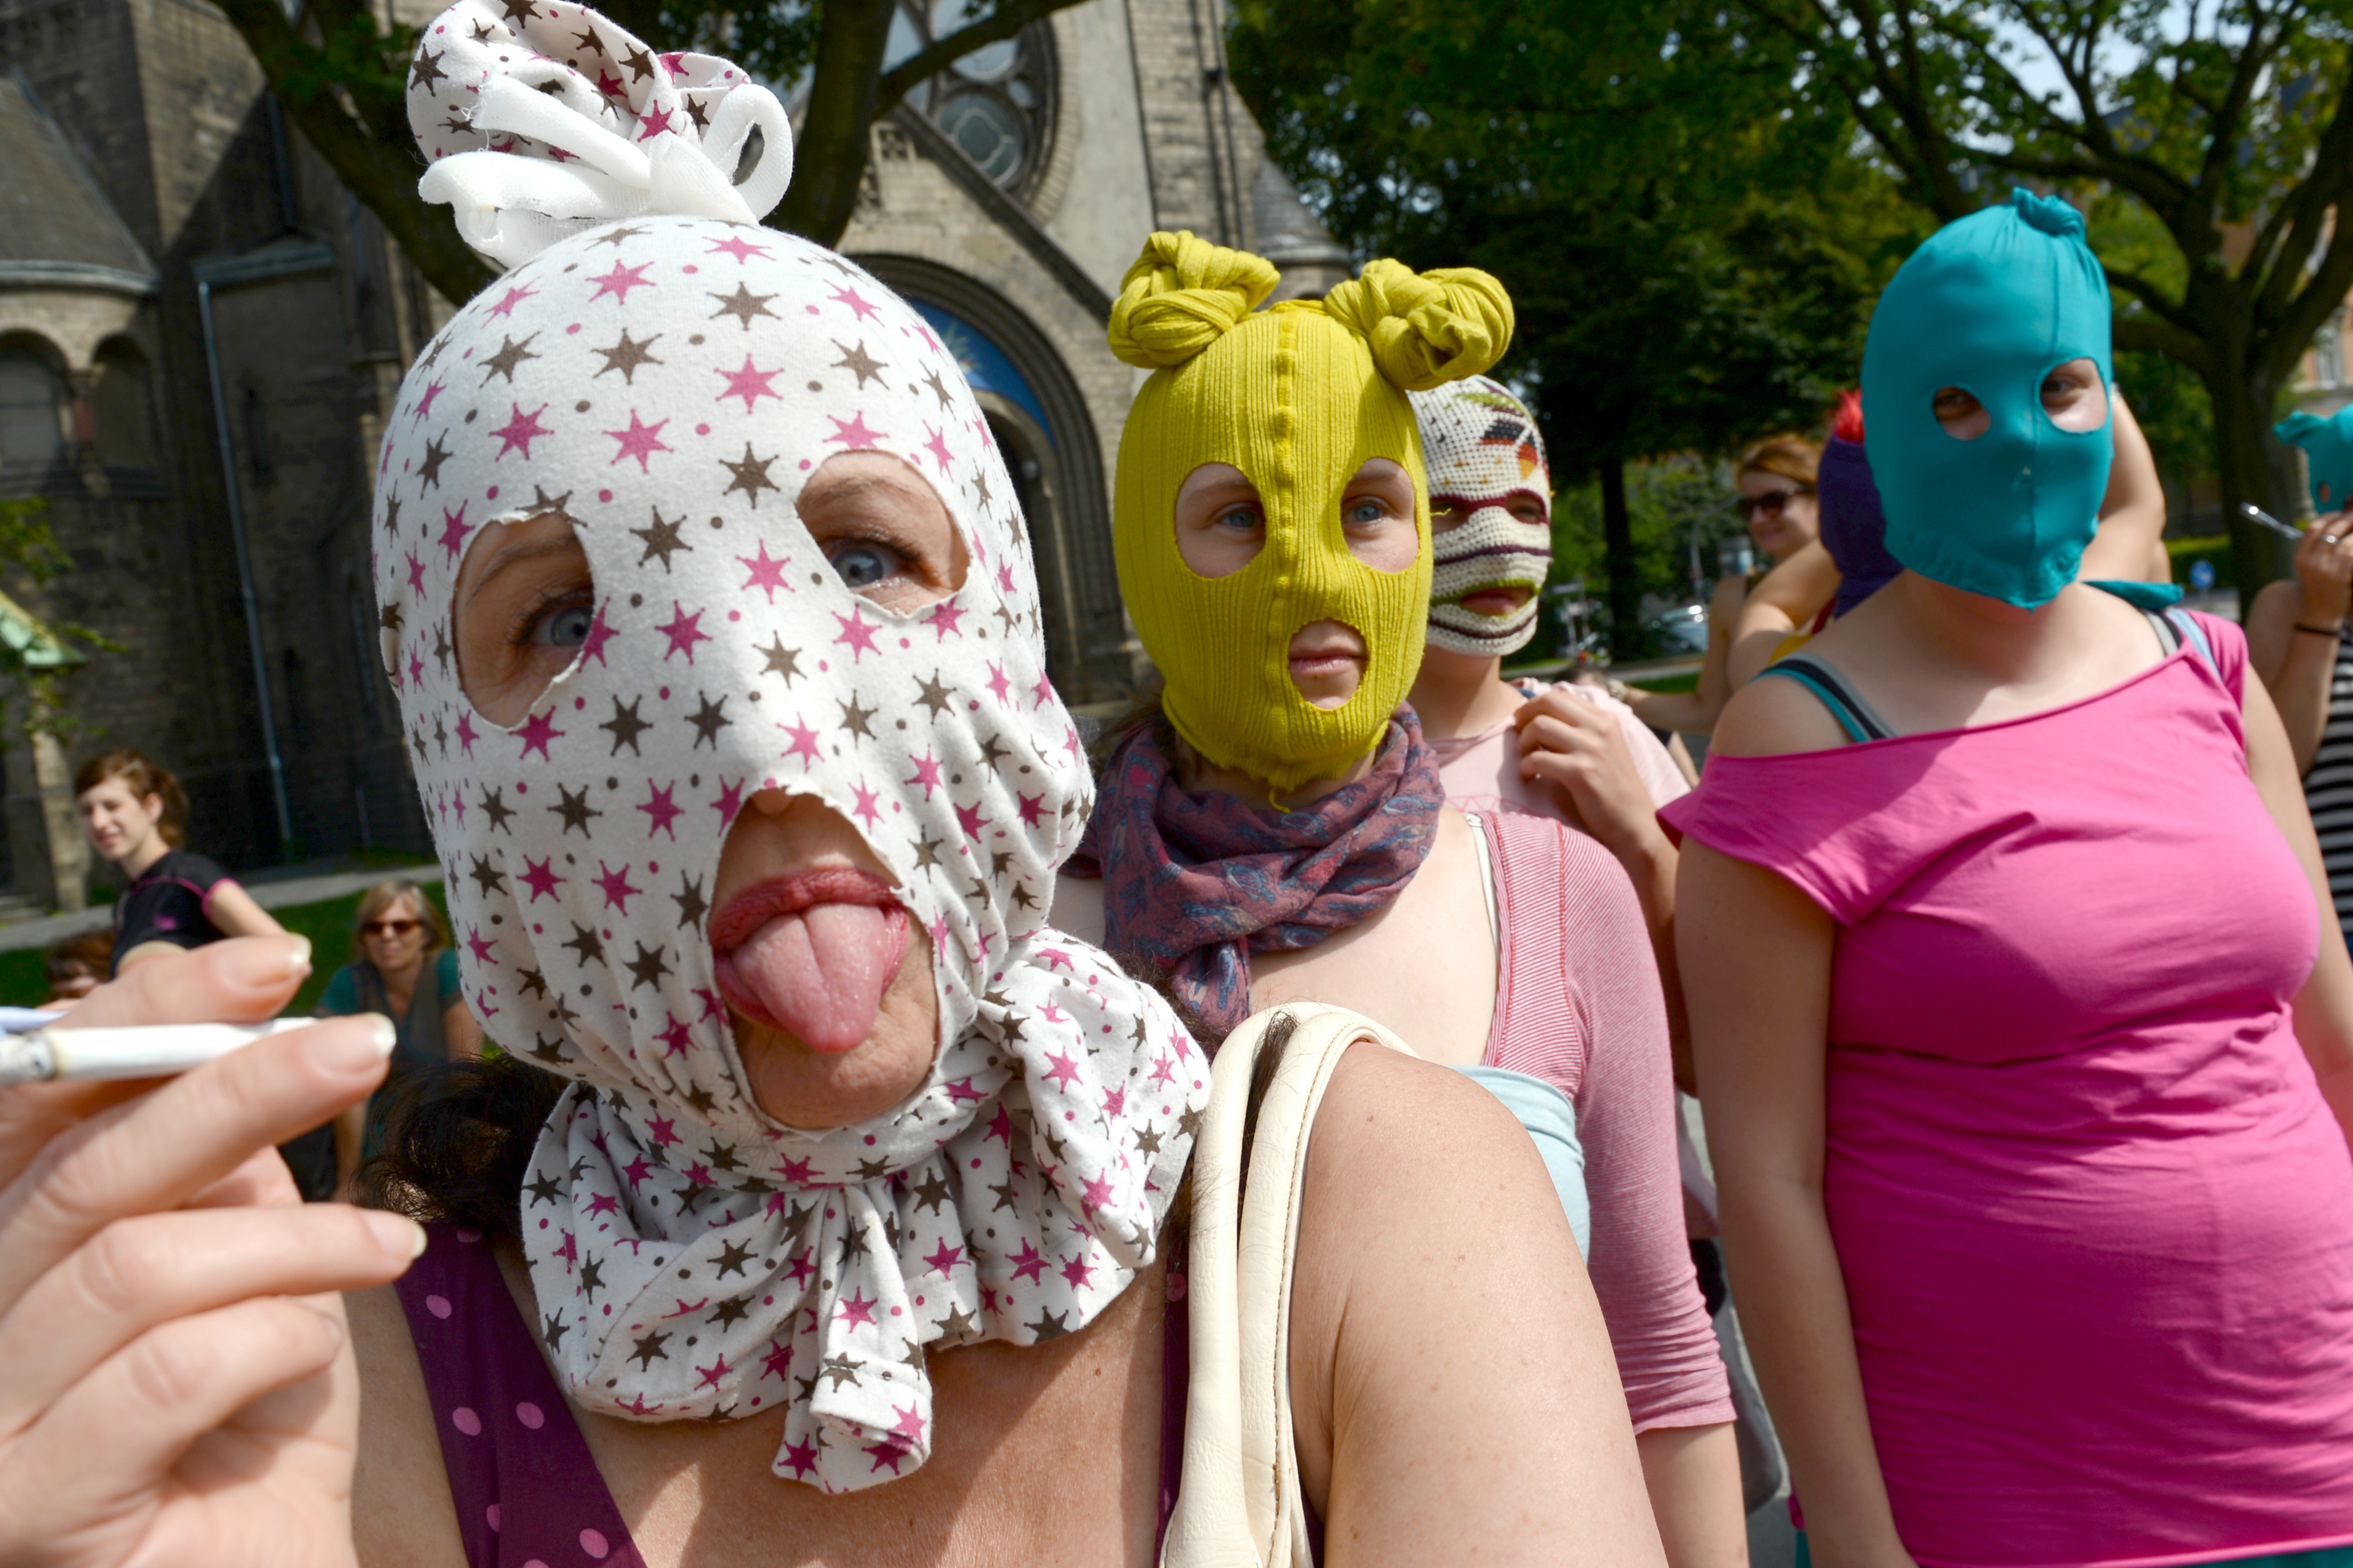 Masked supporters of Pussy Riot gather in Hamburg, Germany.